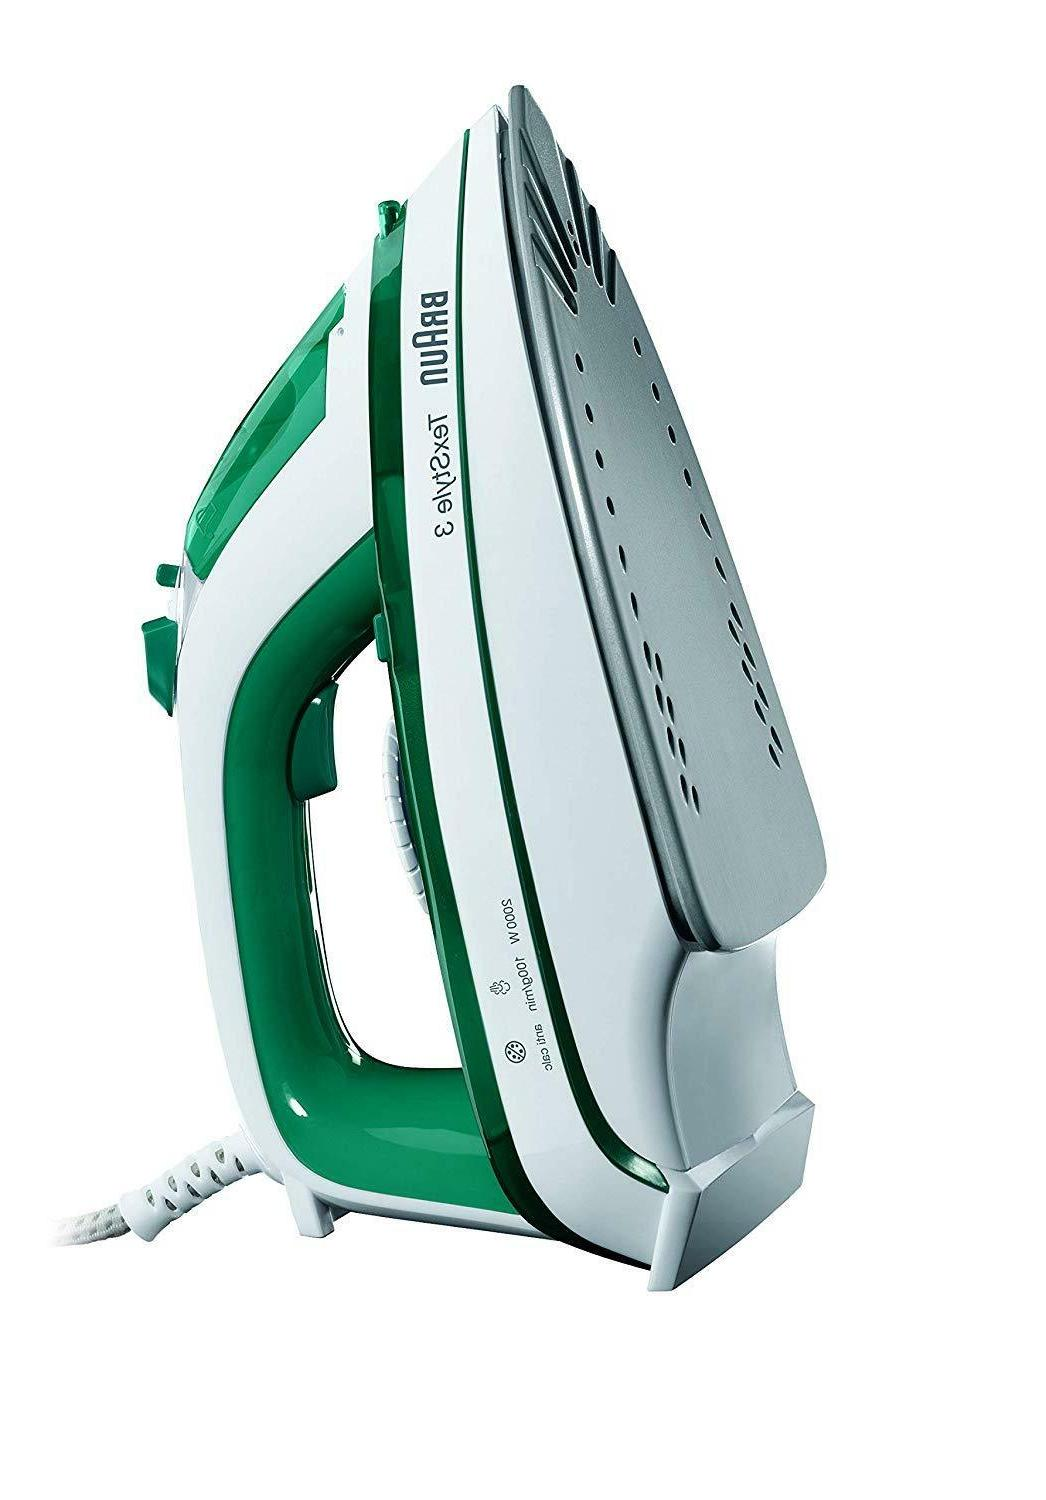 ts345 texstyle 3 steam iron